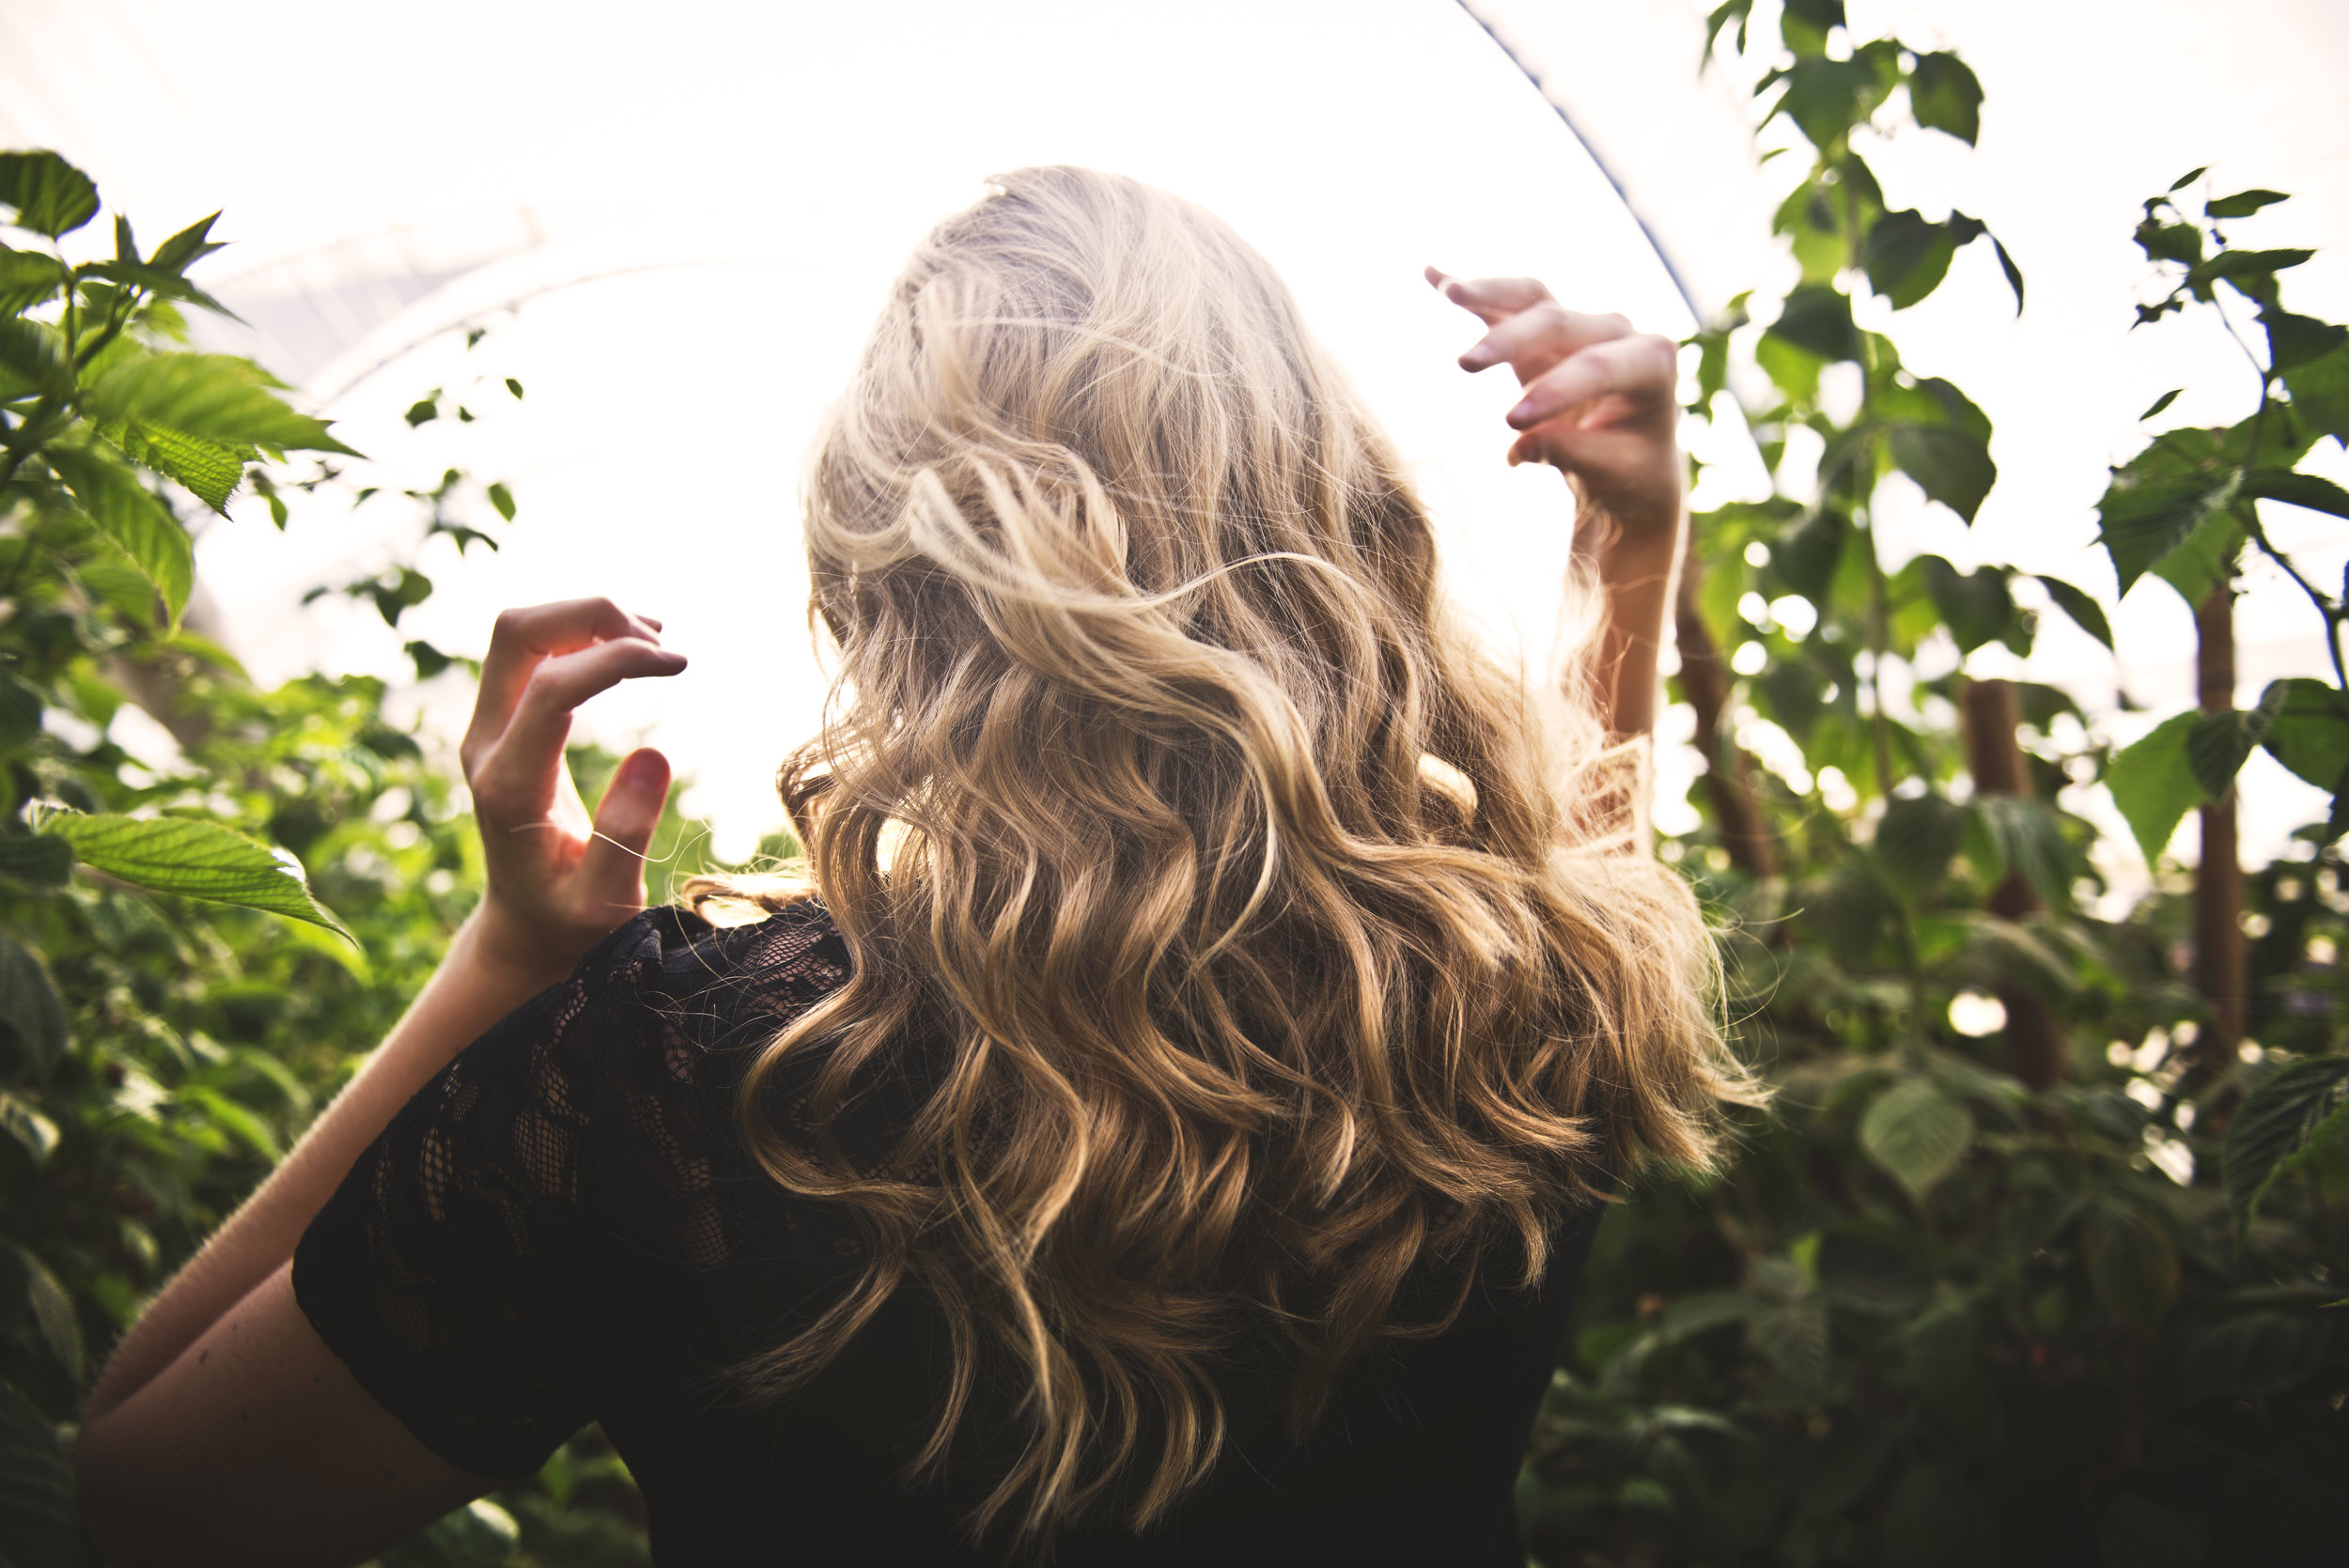 say no to a bad hair day & BOOK NOW! - By booking an appointment, you agree to the Salon Policy below.